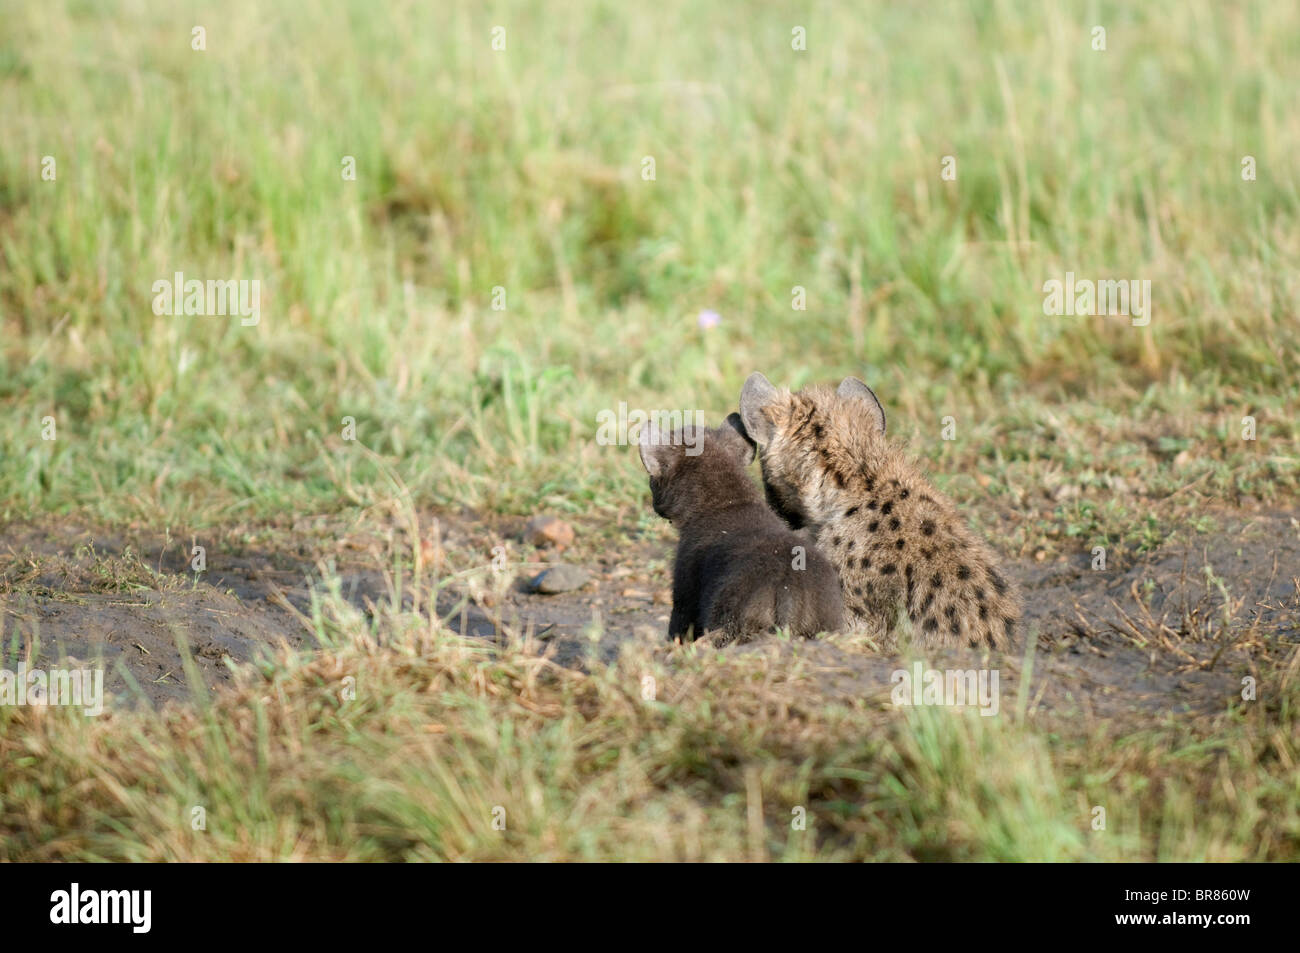 Two baby hyenas cuddle together in the grass. - Stock Image